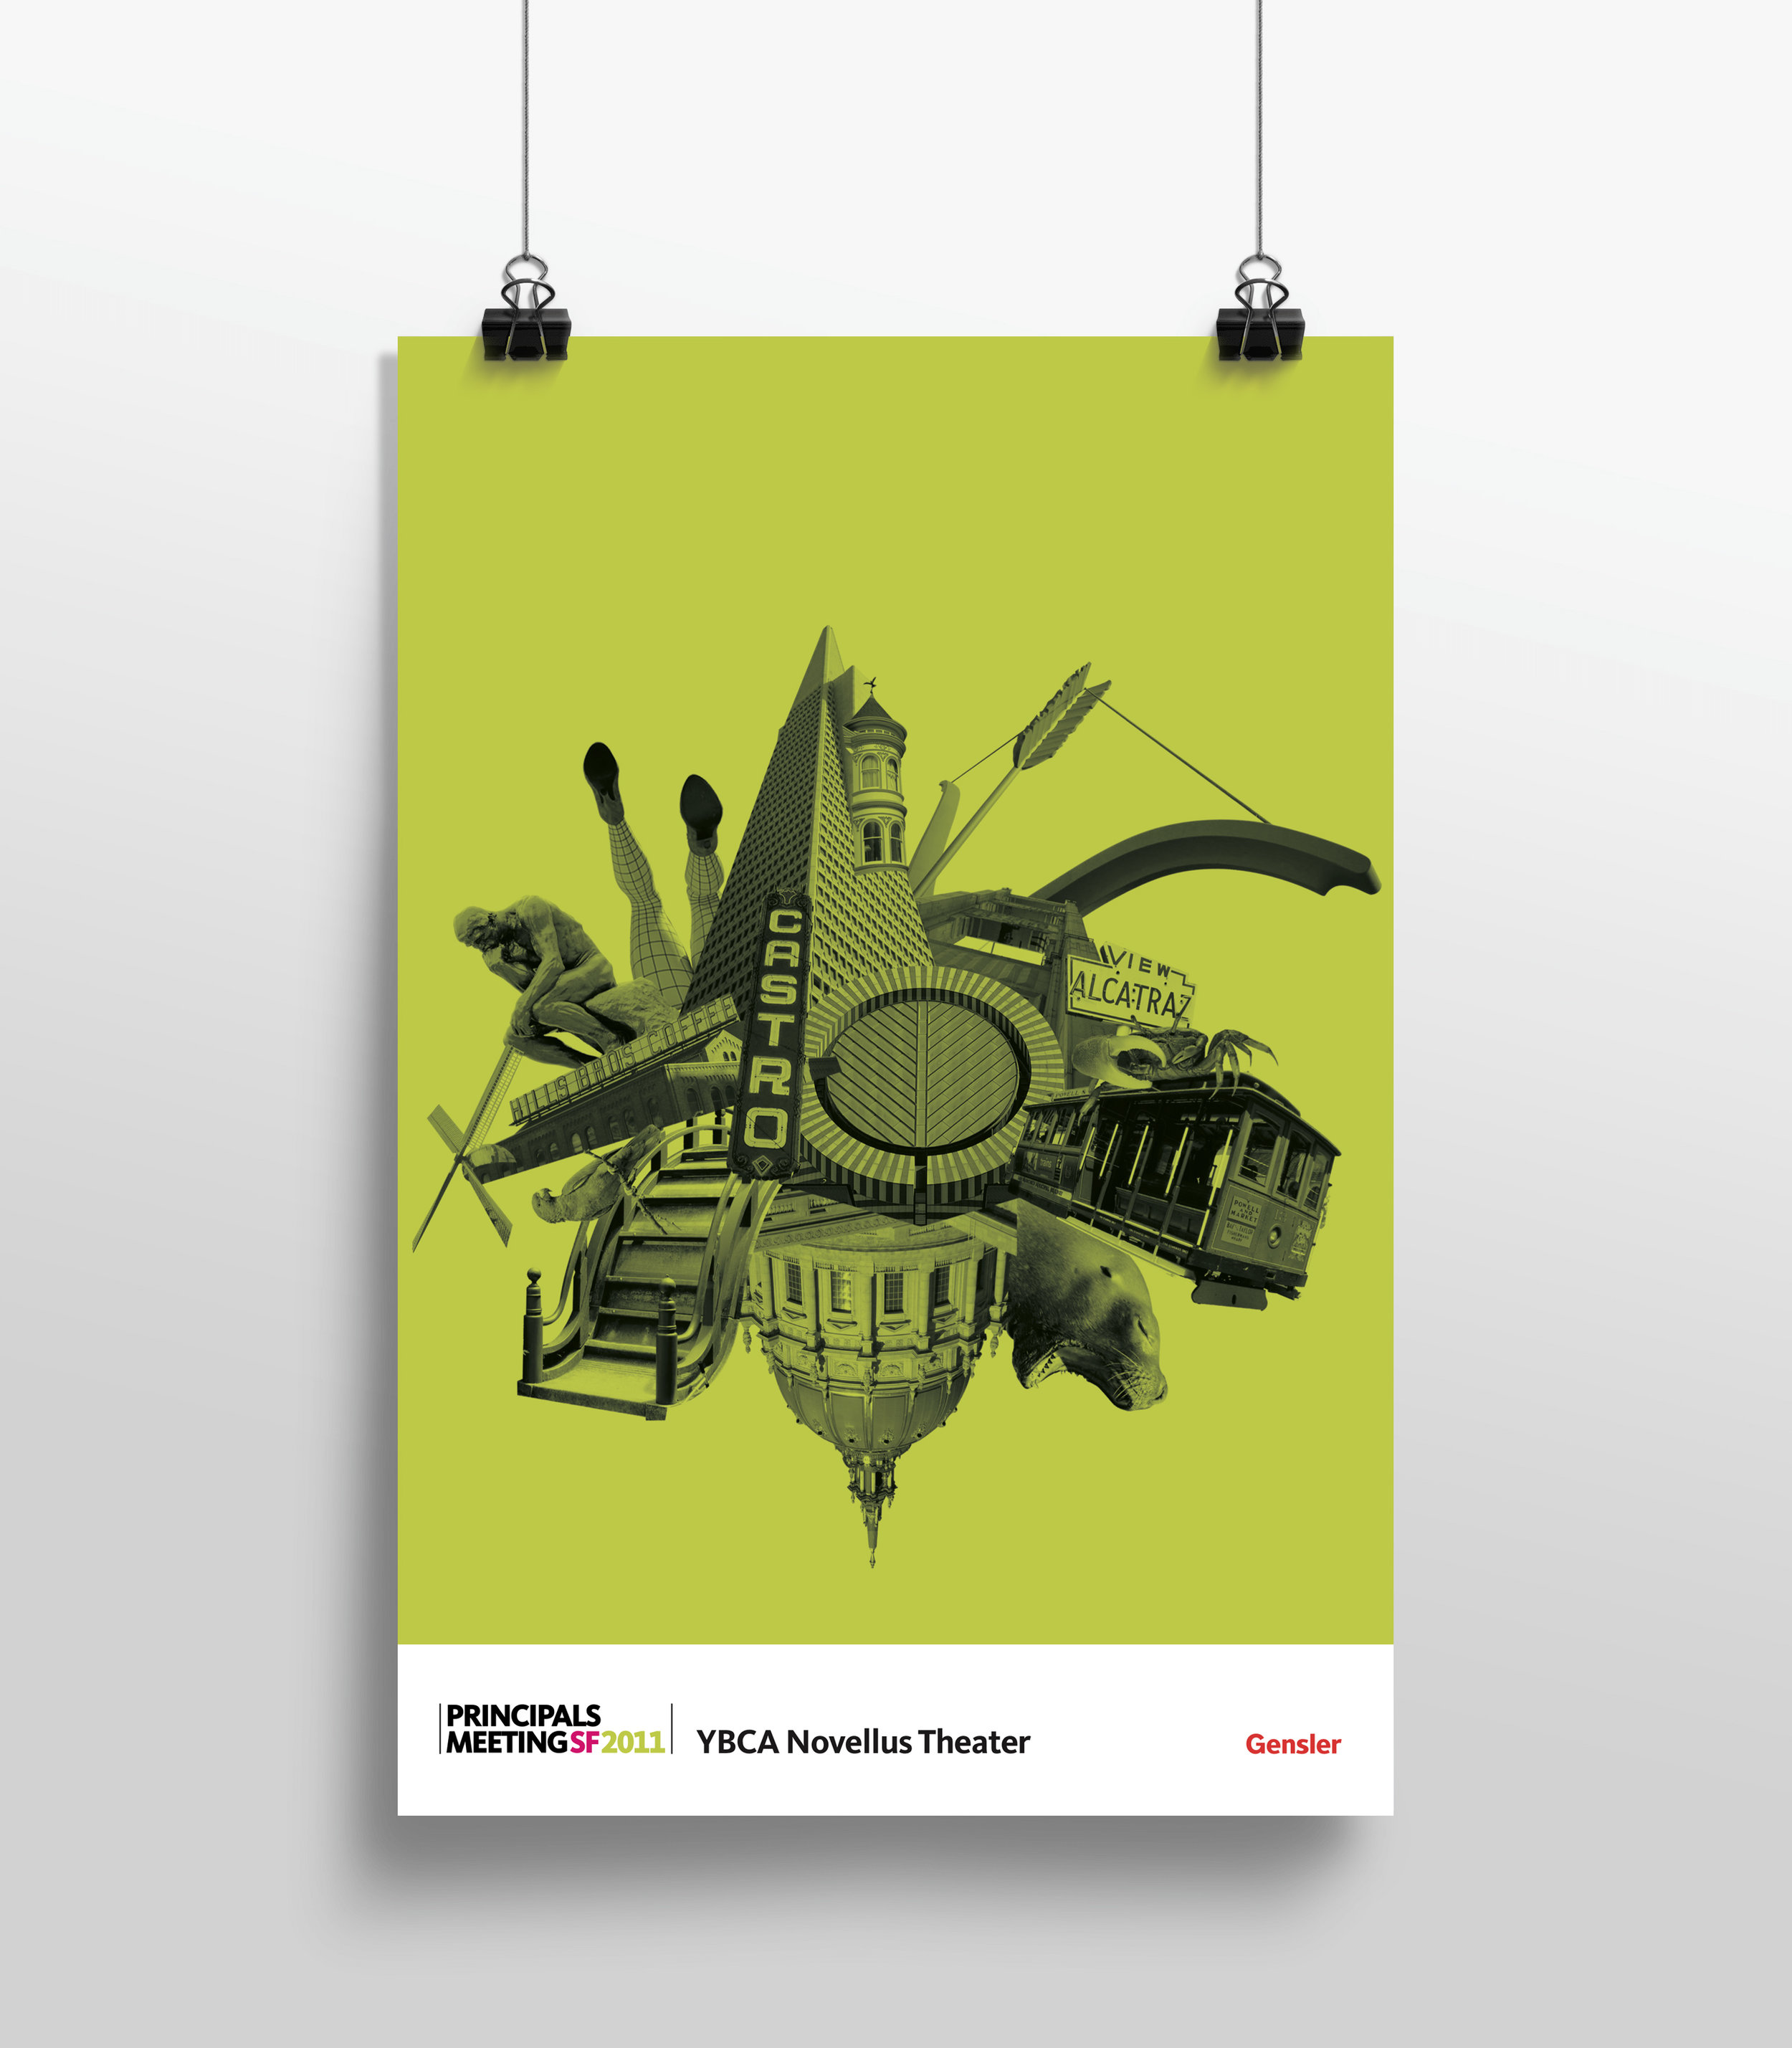 Poster-Mockup-vol4-WritersTrust copy.jpg